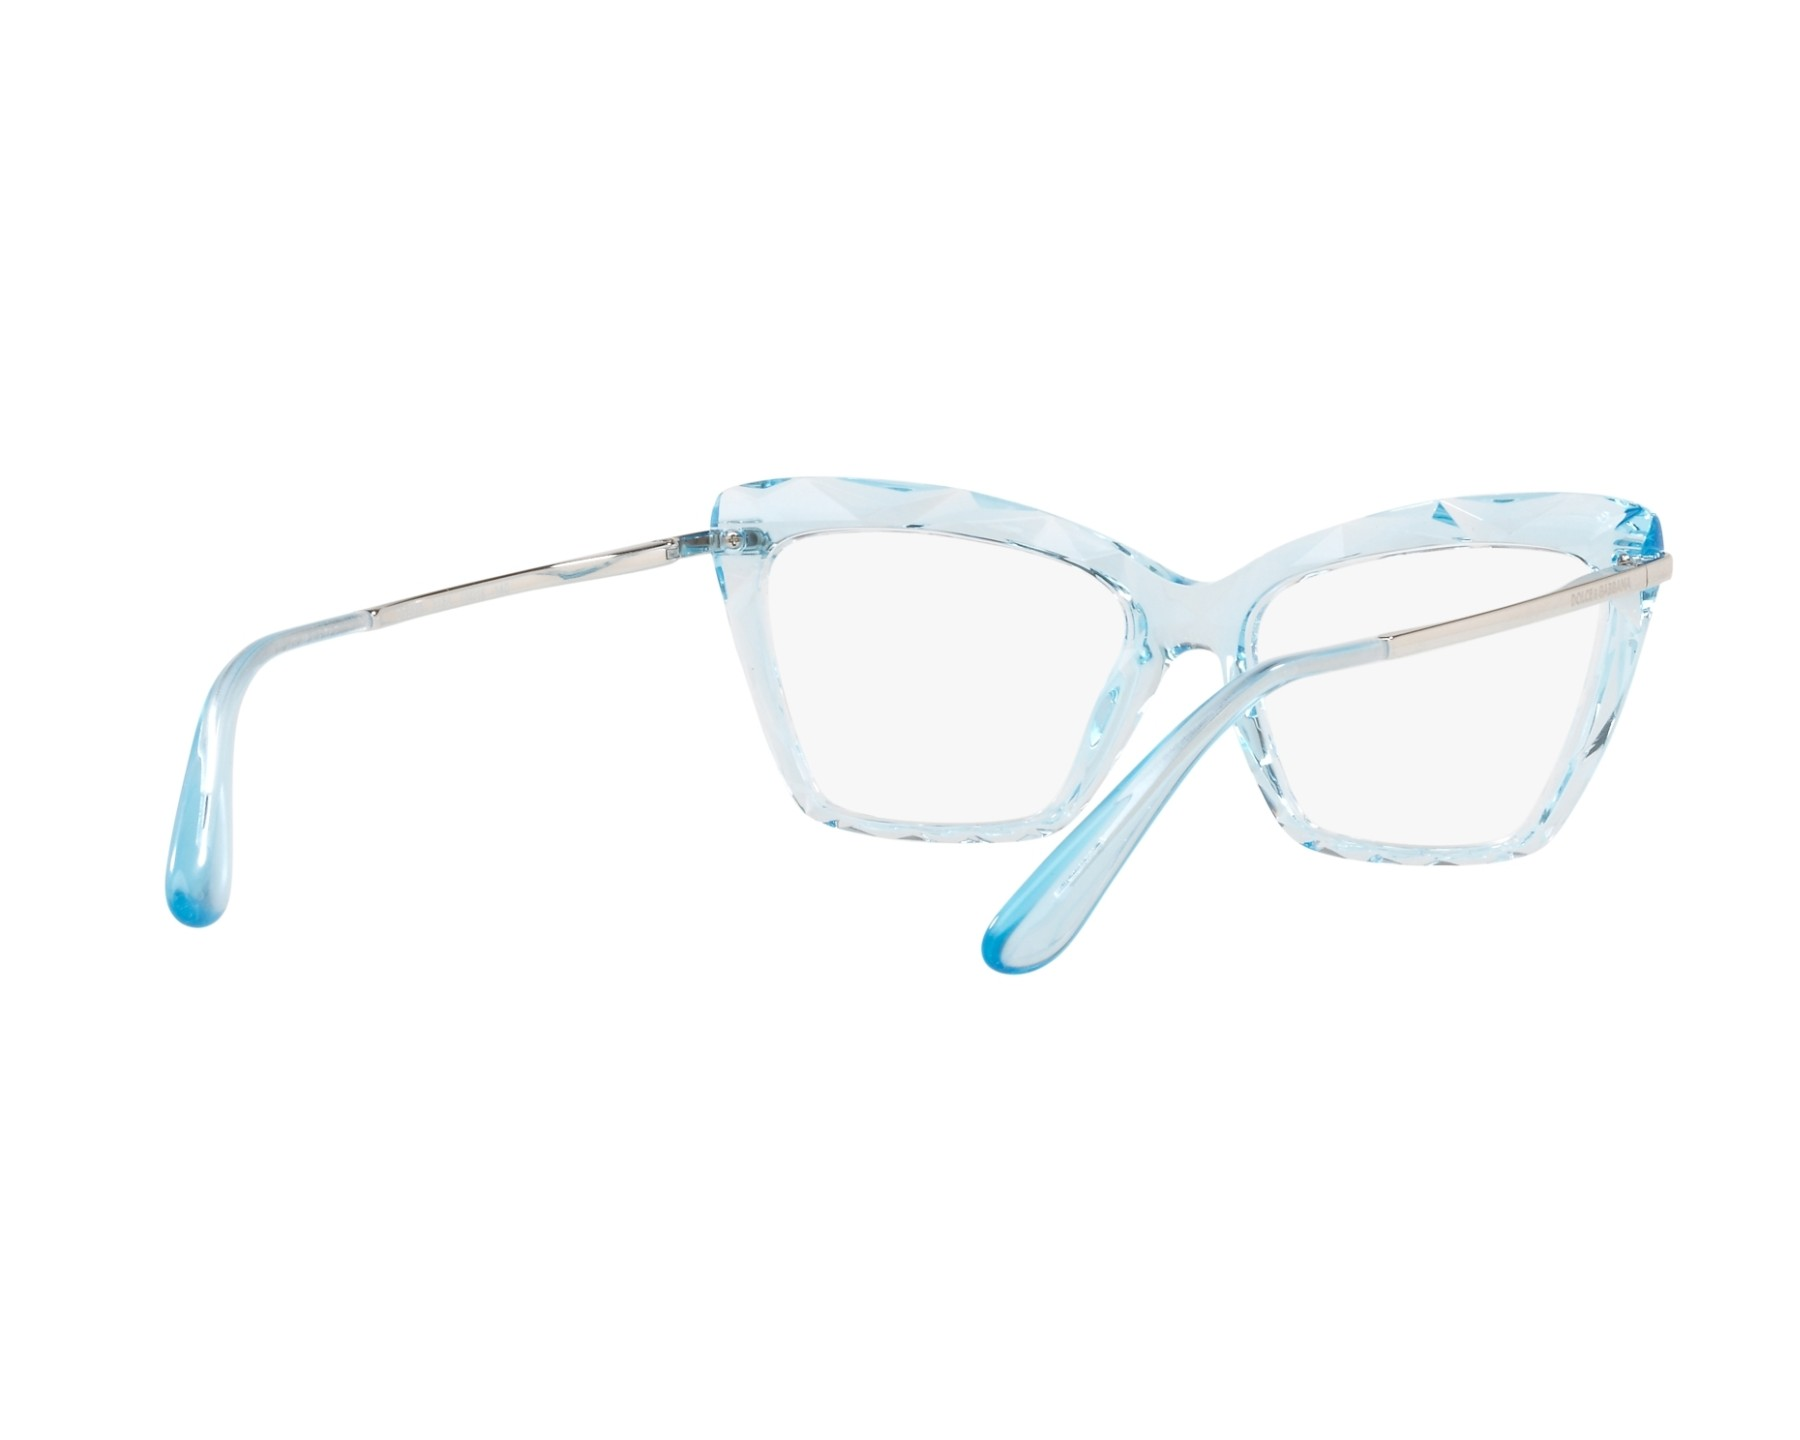 eyeglasses Dolce   Gabbana DG-5025 3134 - Crystal Silver 360 degree view 8 746228c655